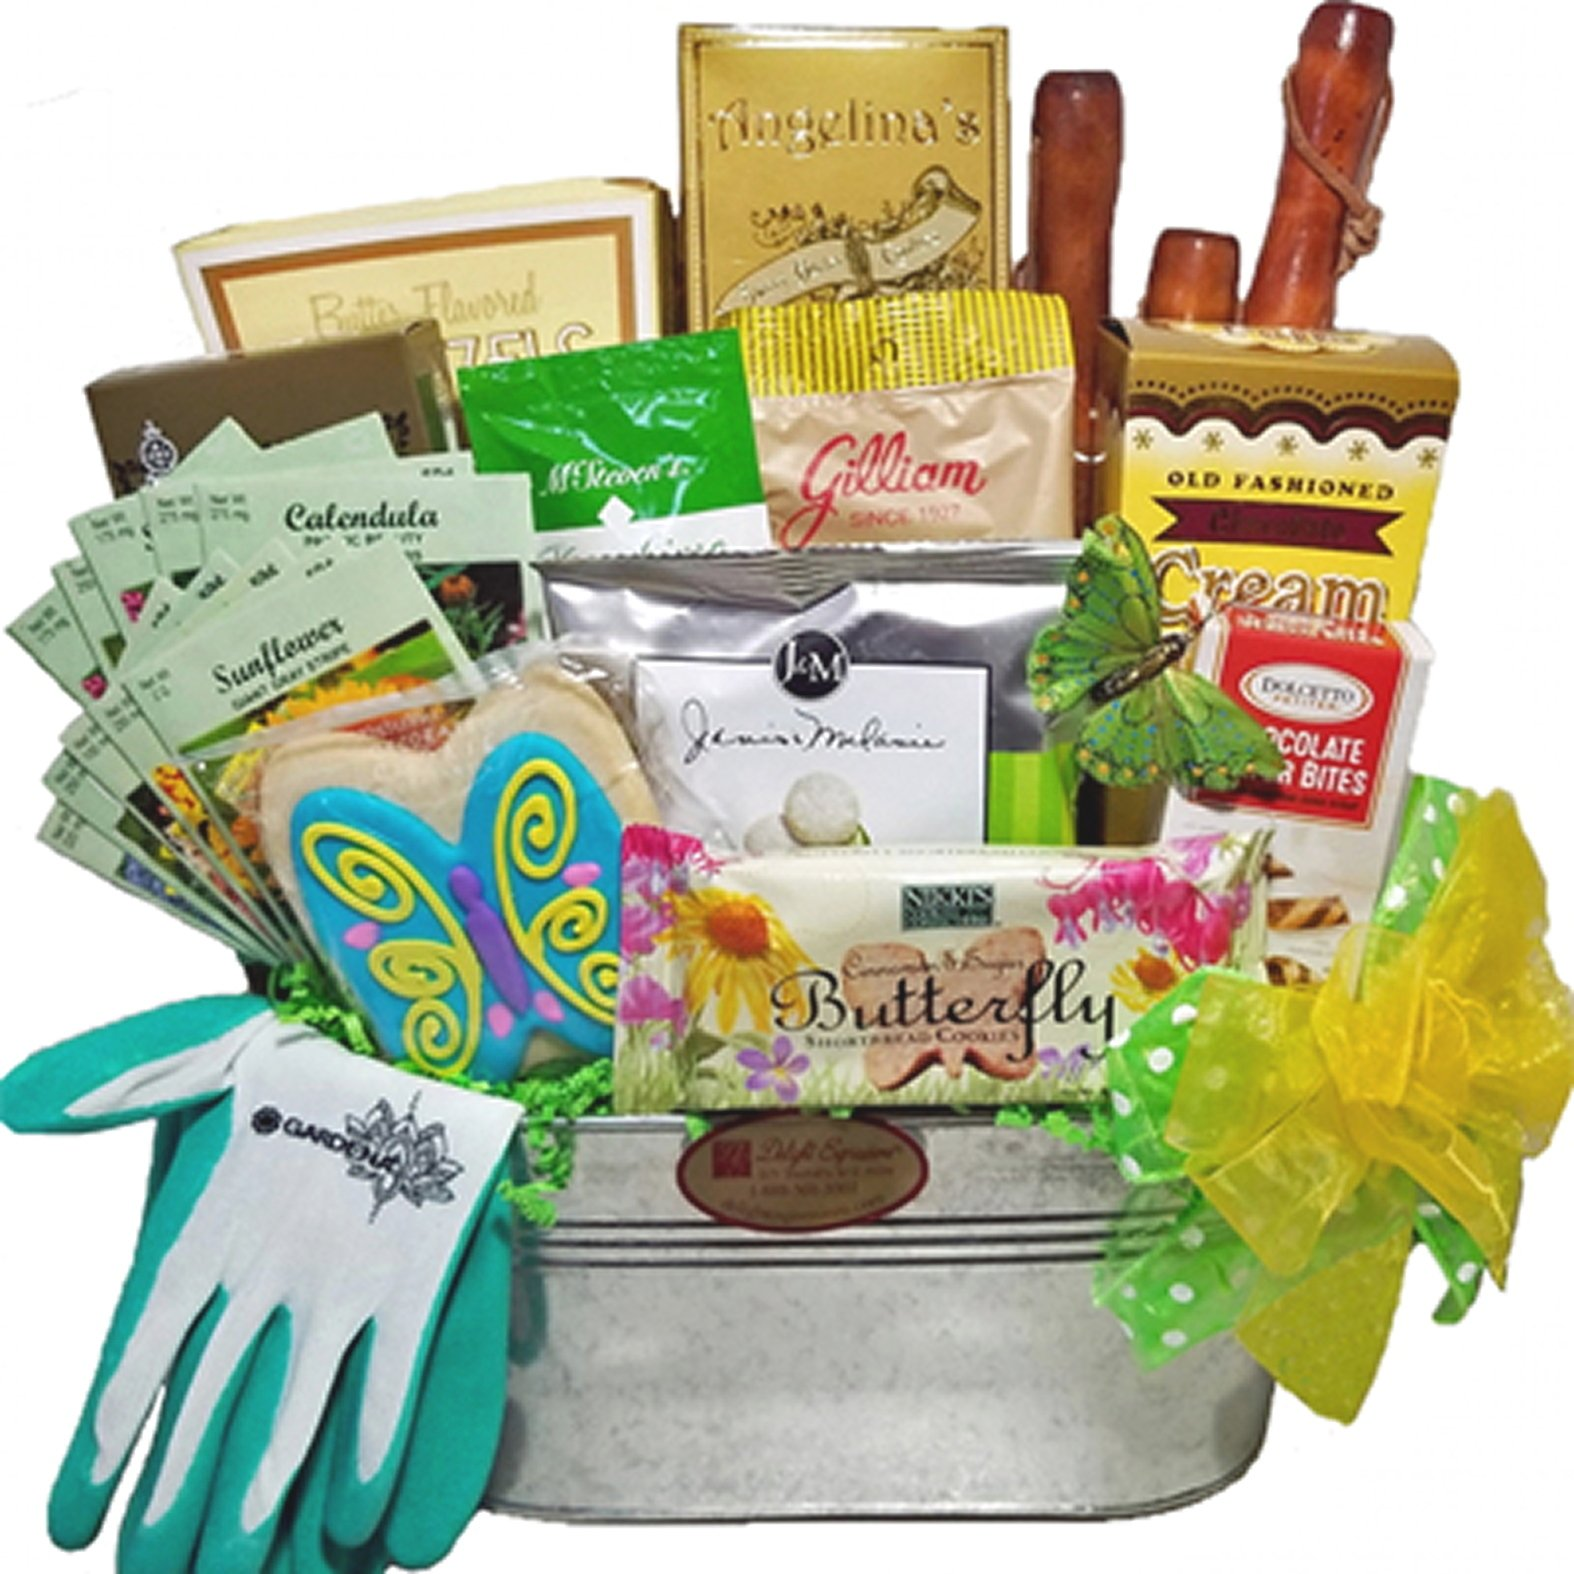 Delight Expressions Garden Tools and Goods - A Mother's Day Gift Basket - Birthday or Get Well Gift